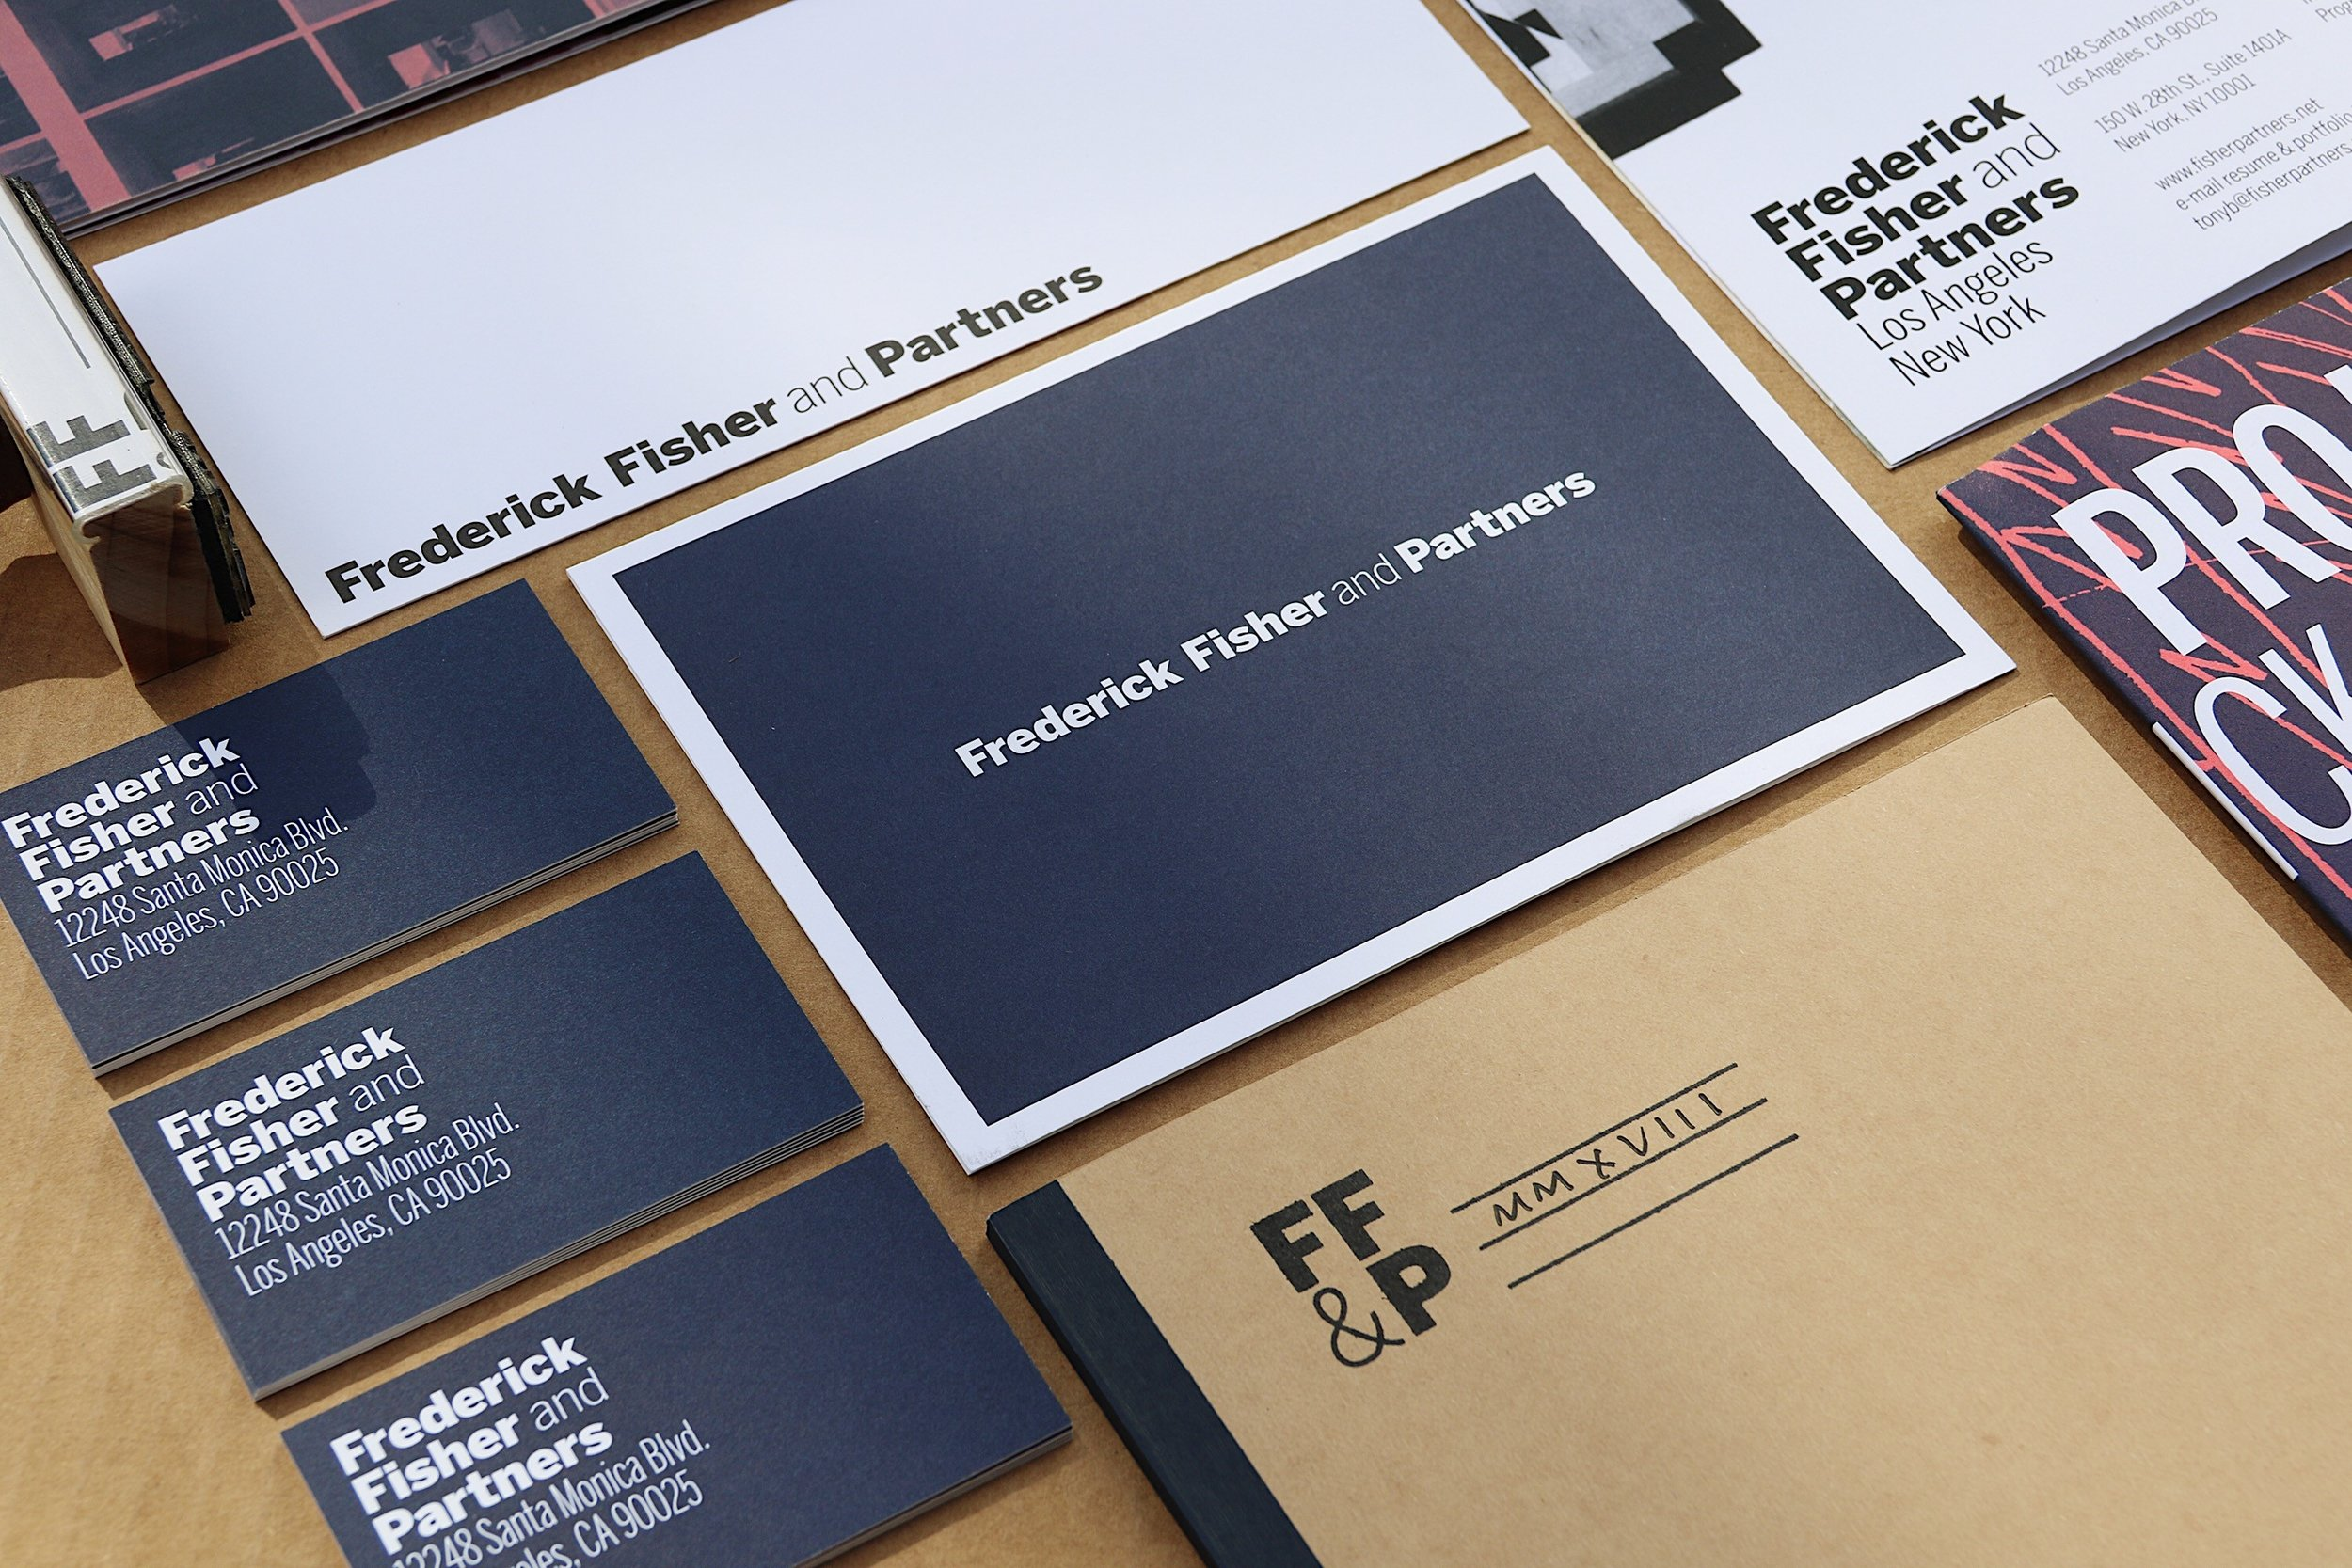 Rebranded marketing collateral.